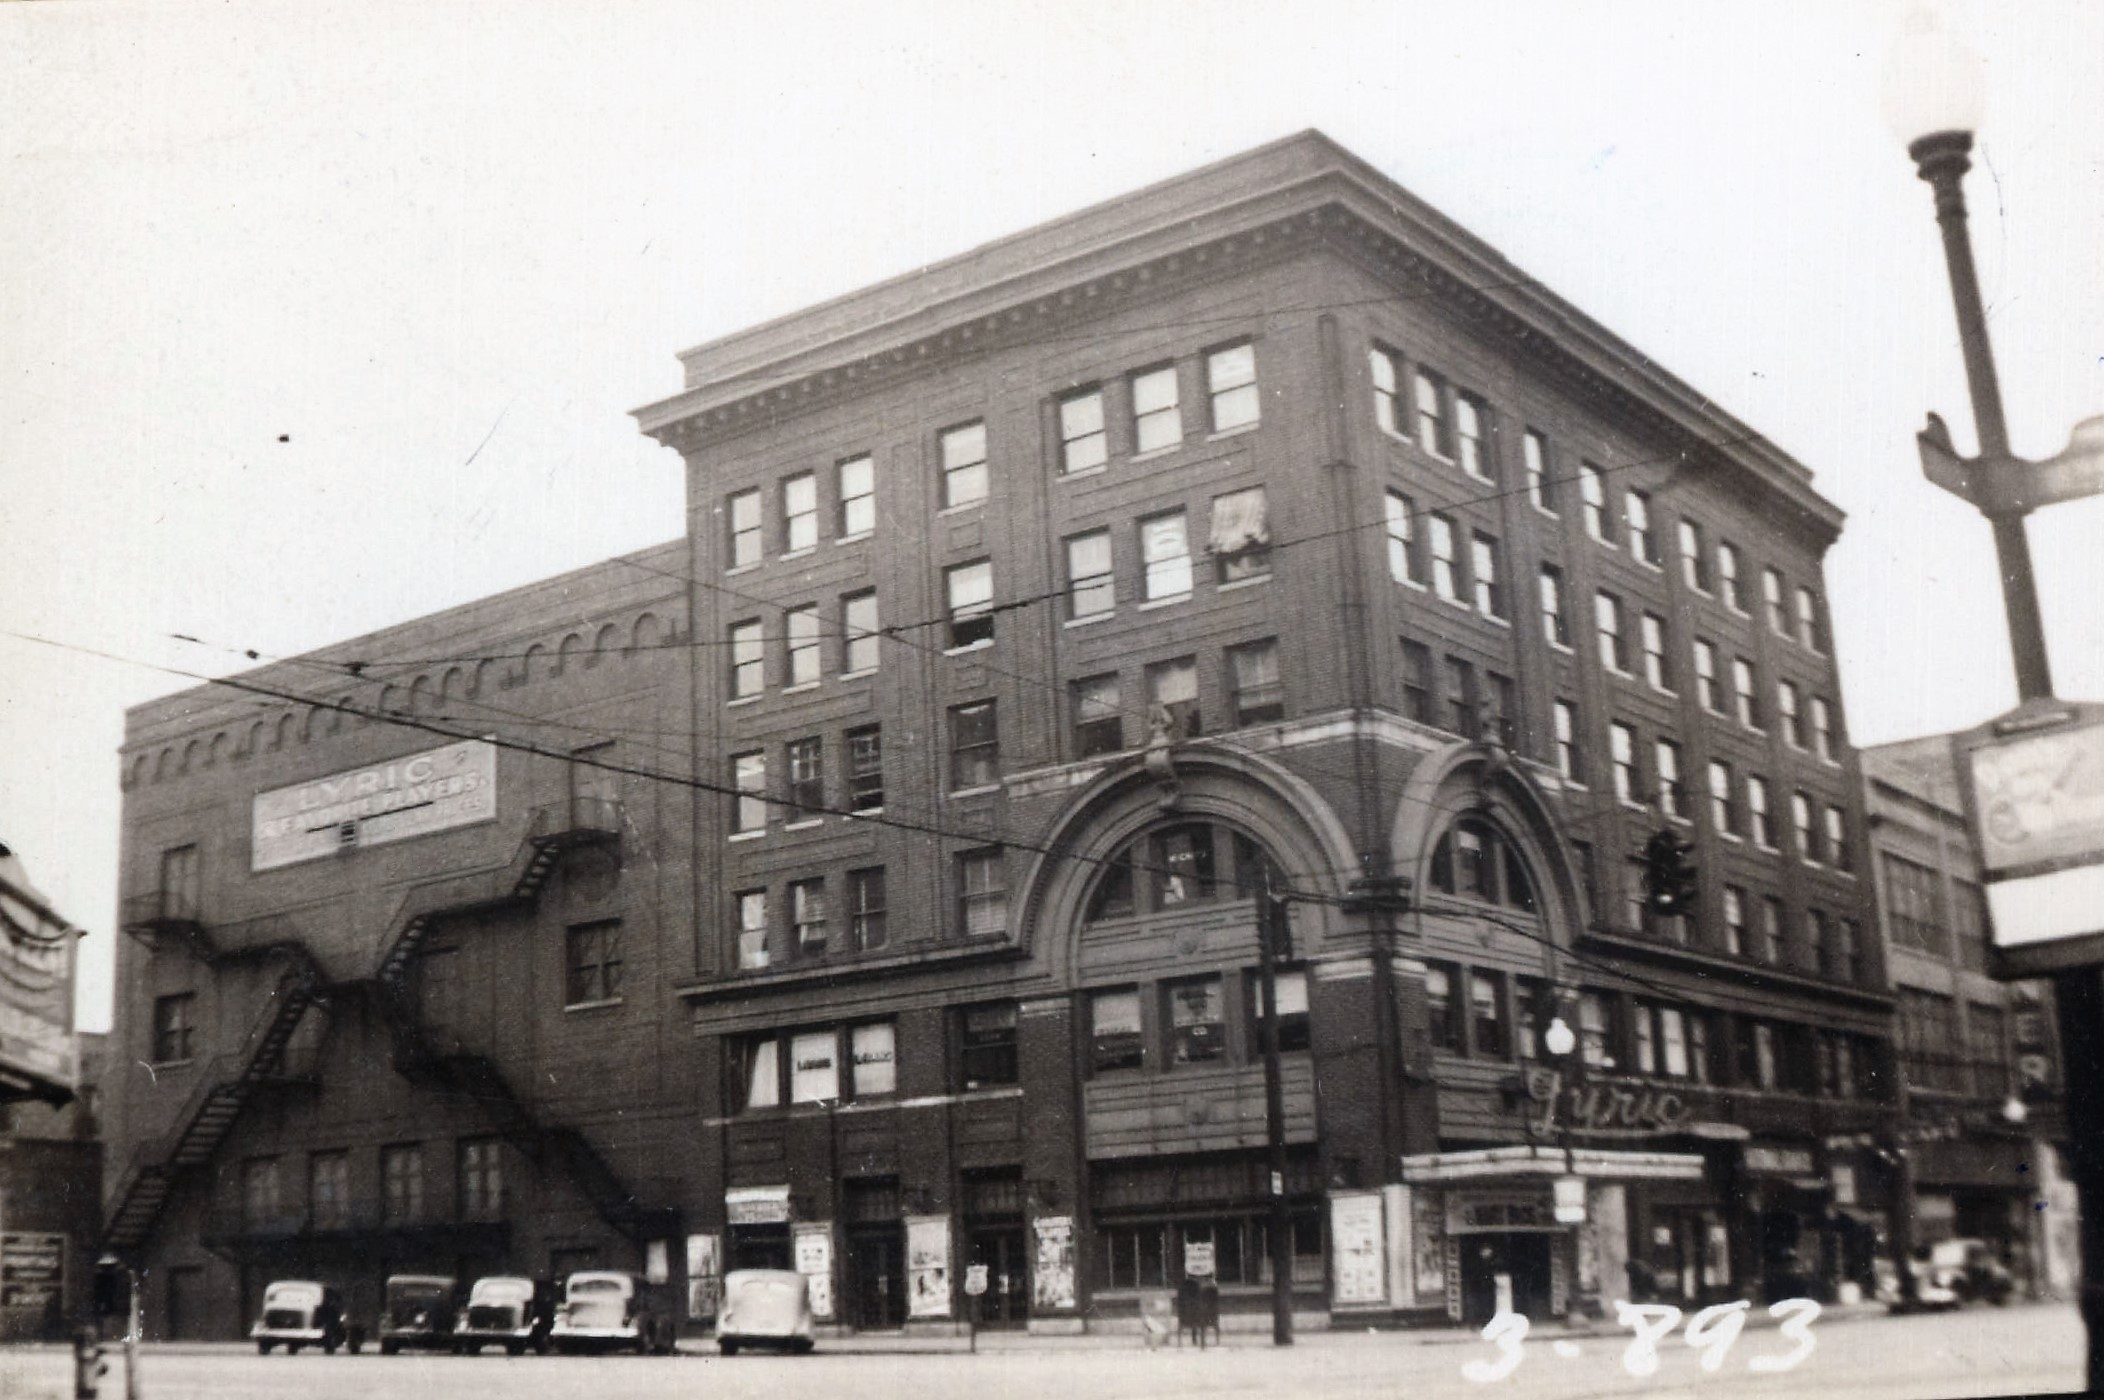 Lyric Theater ca. 1938 (Birmingham Public Library)